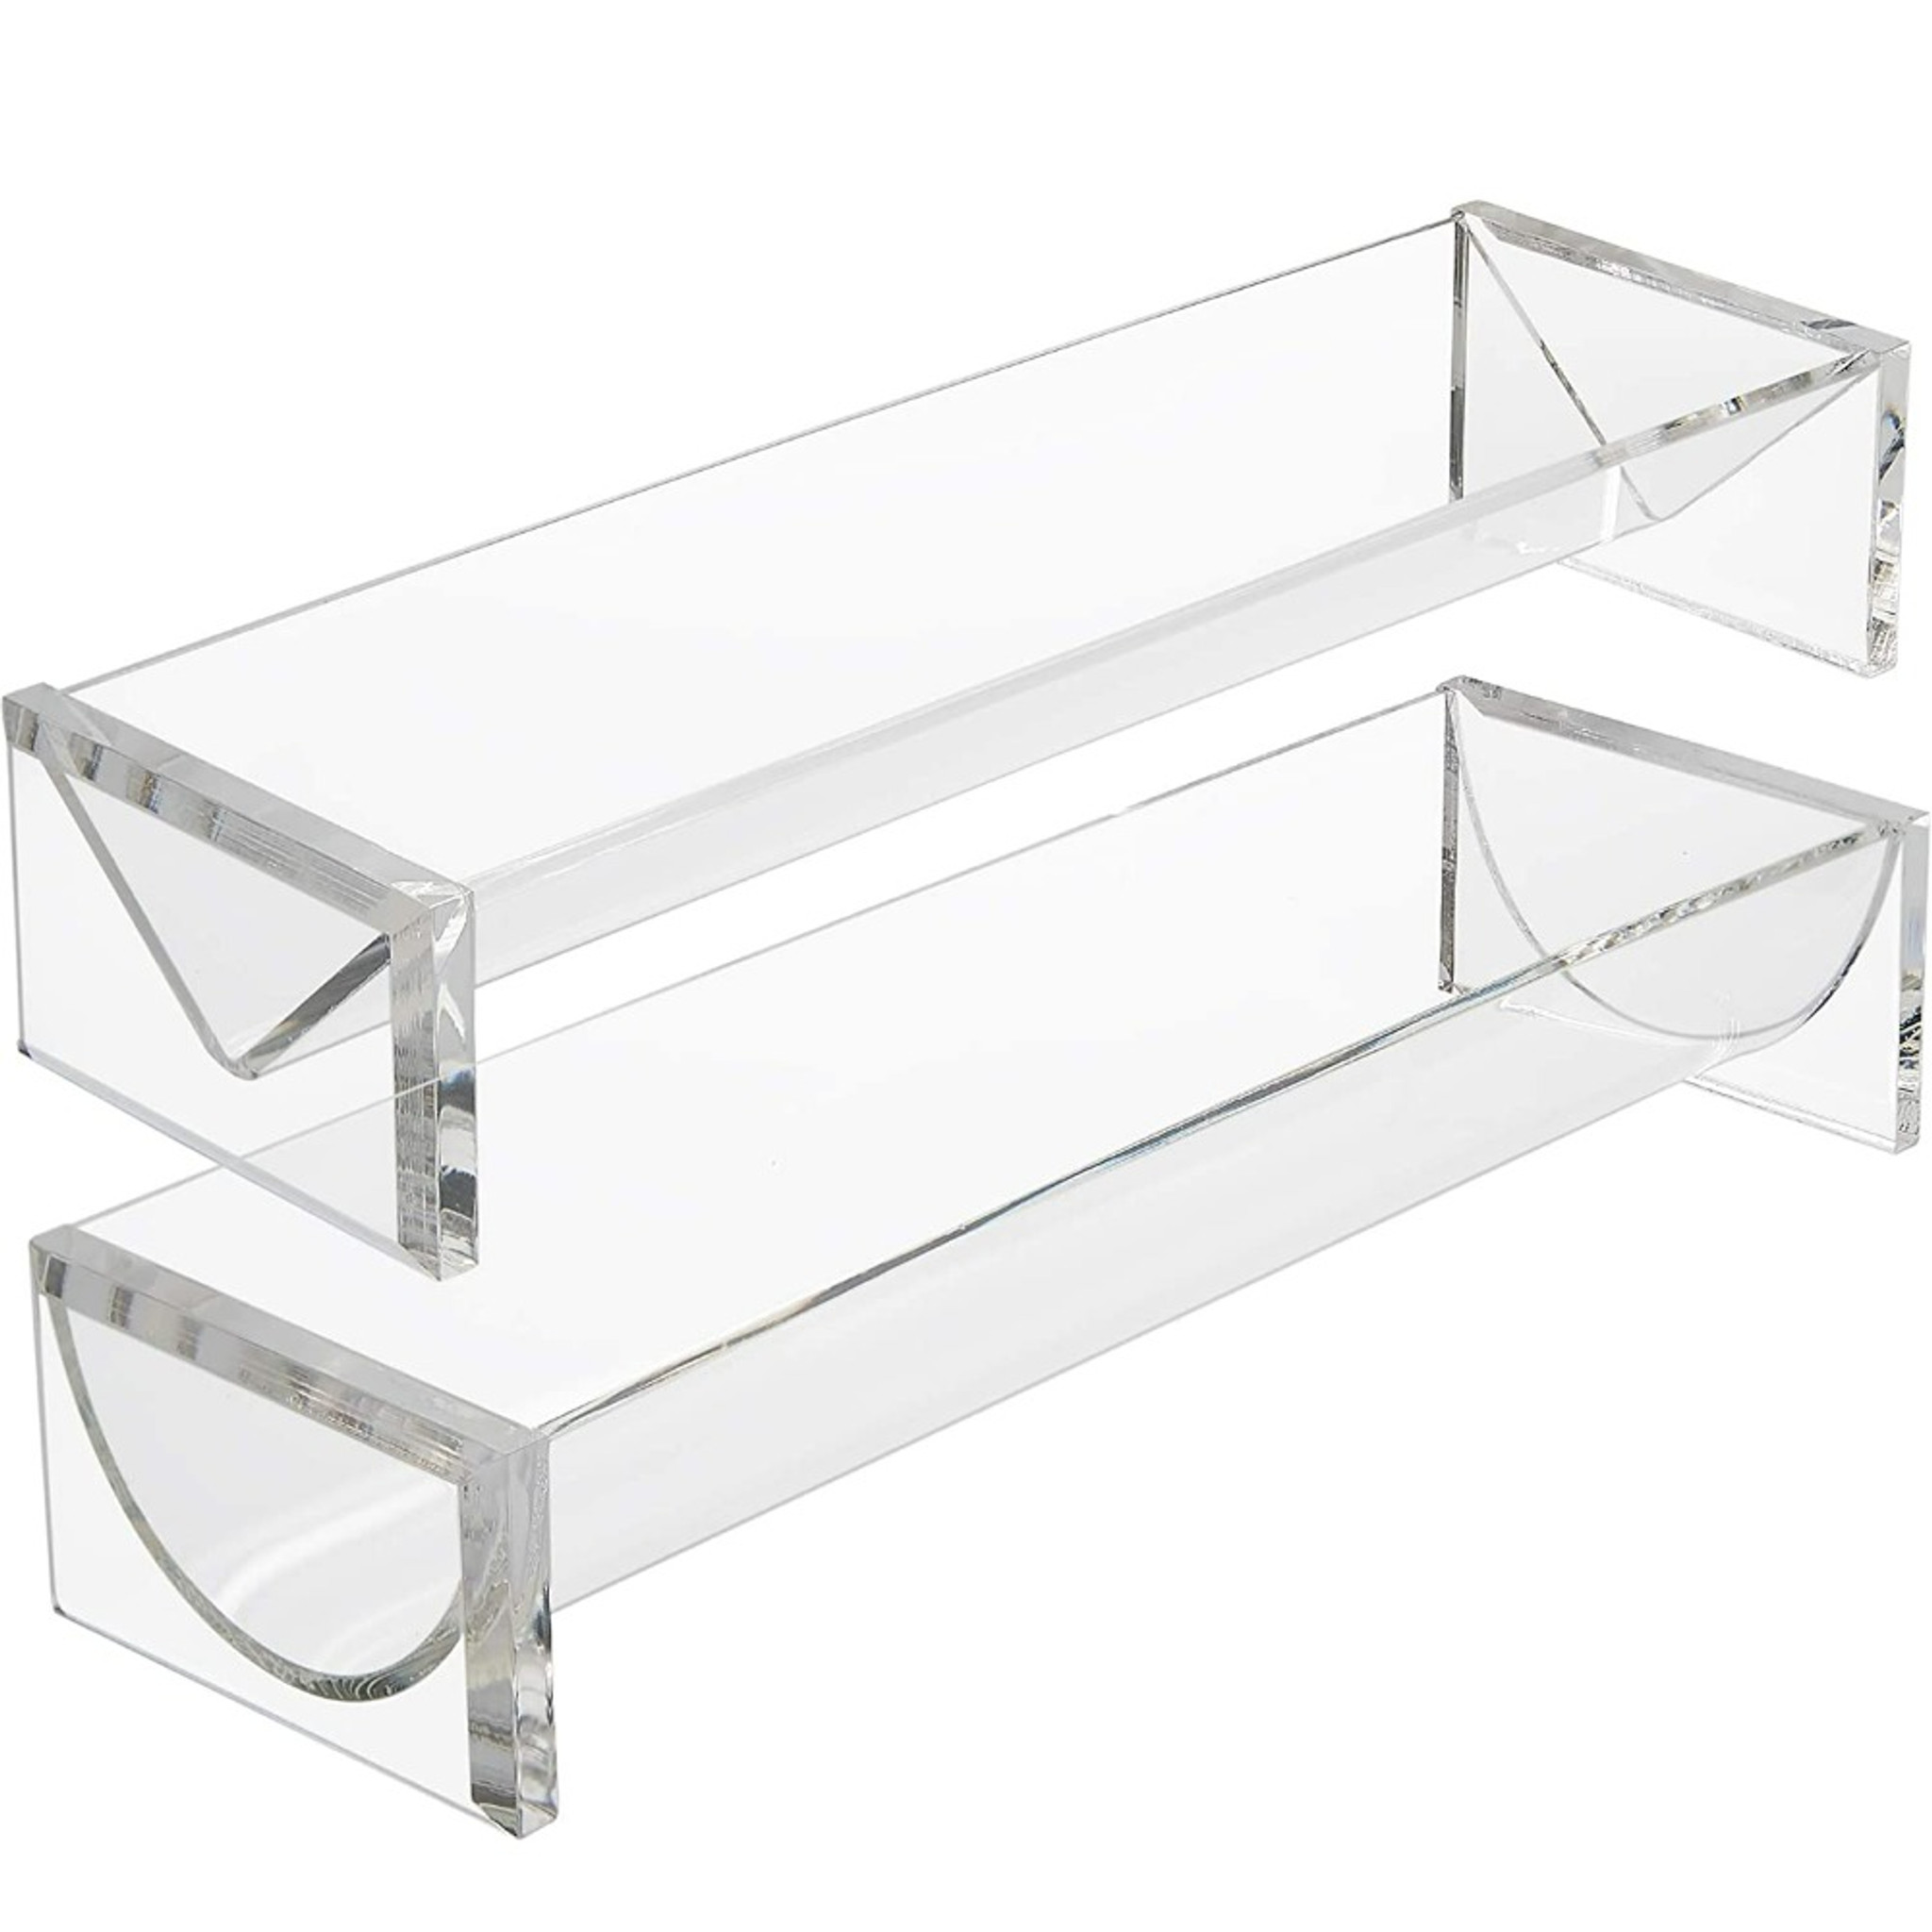 Clear Lucite Cracker Trays, Set of 2